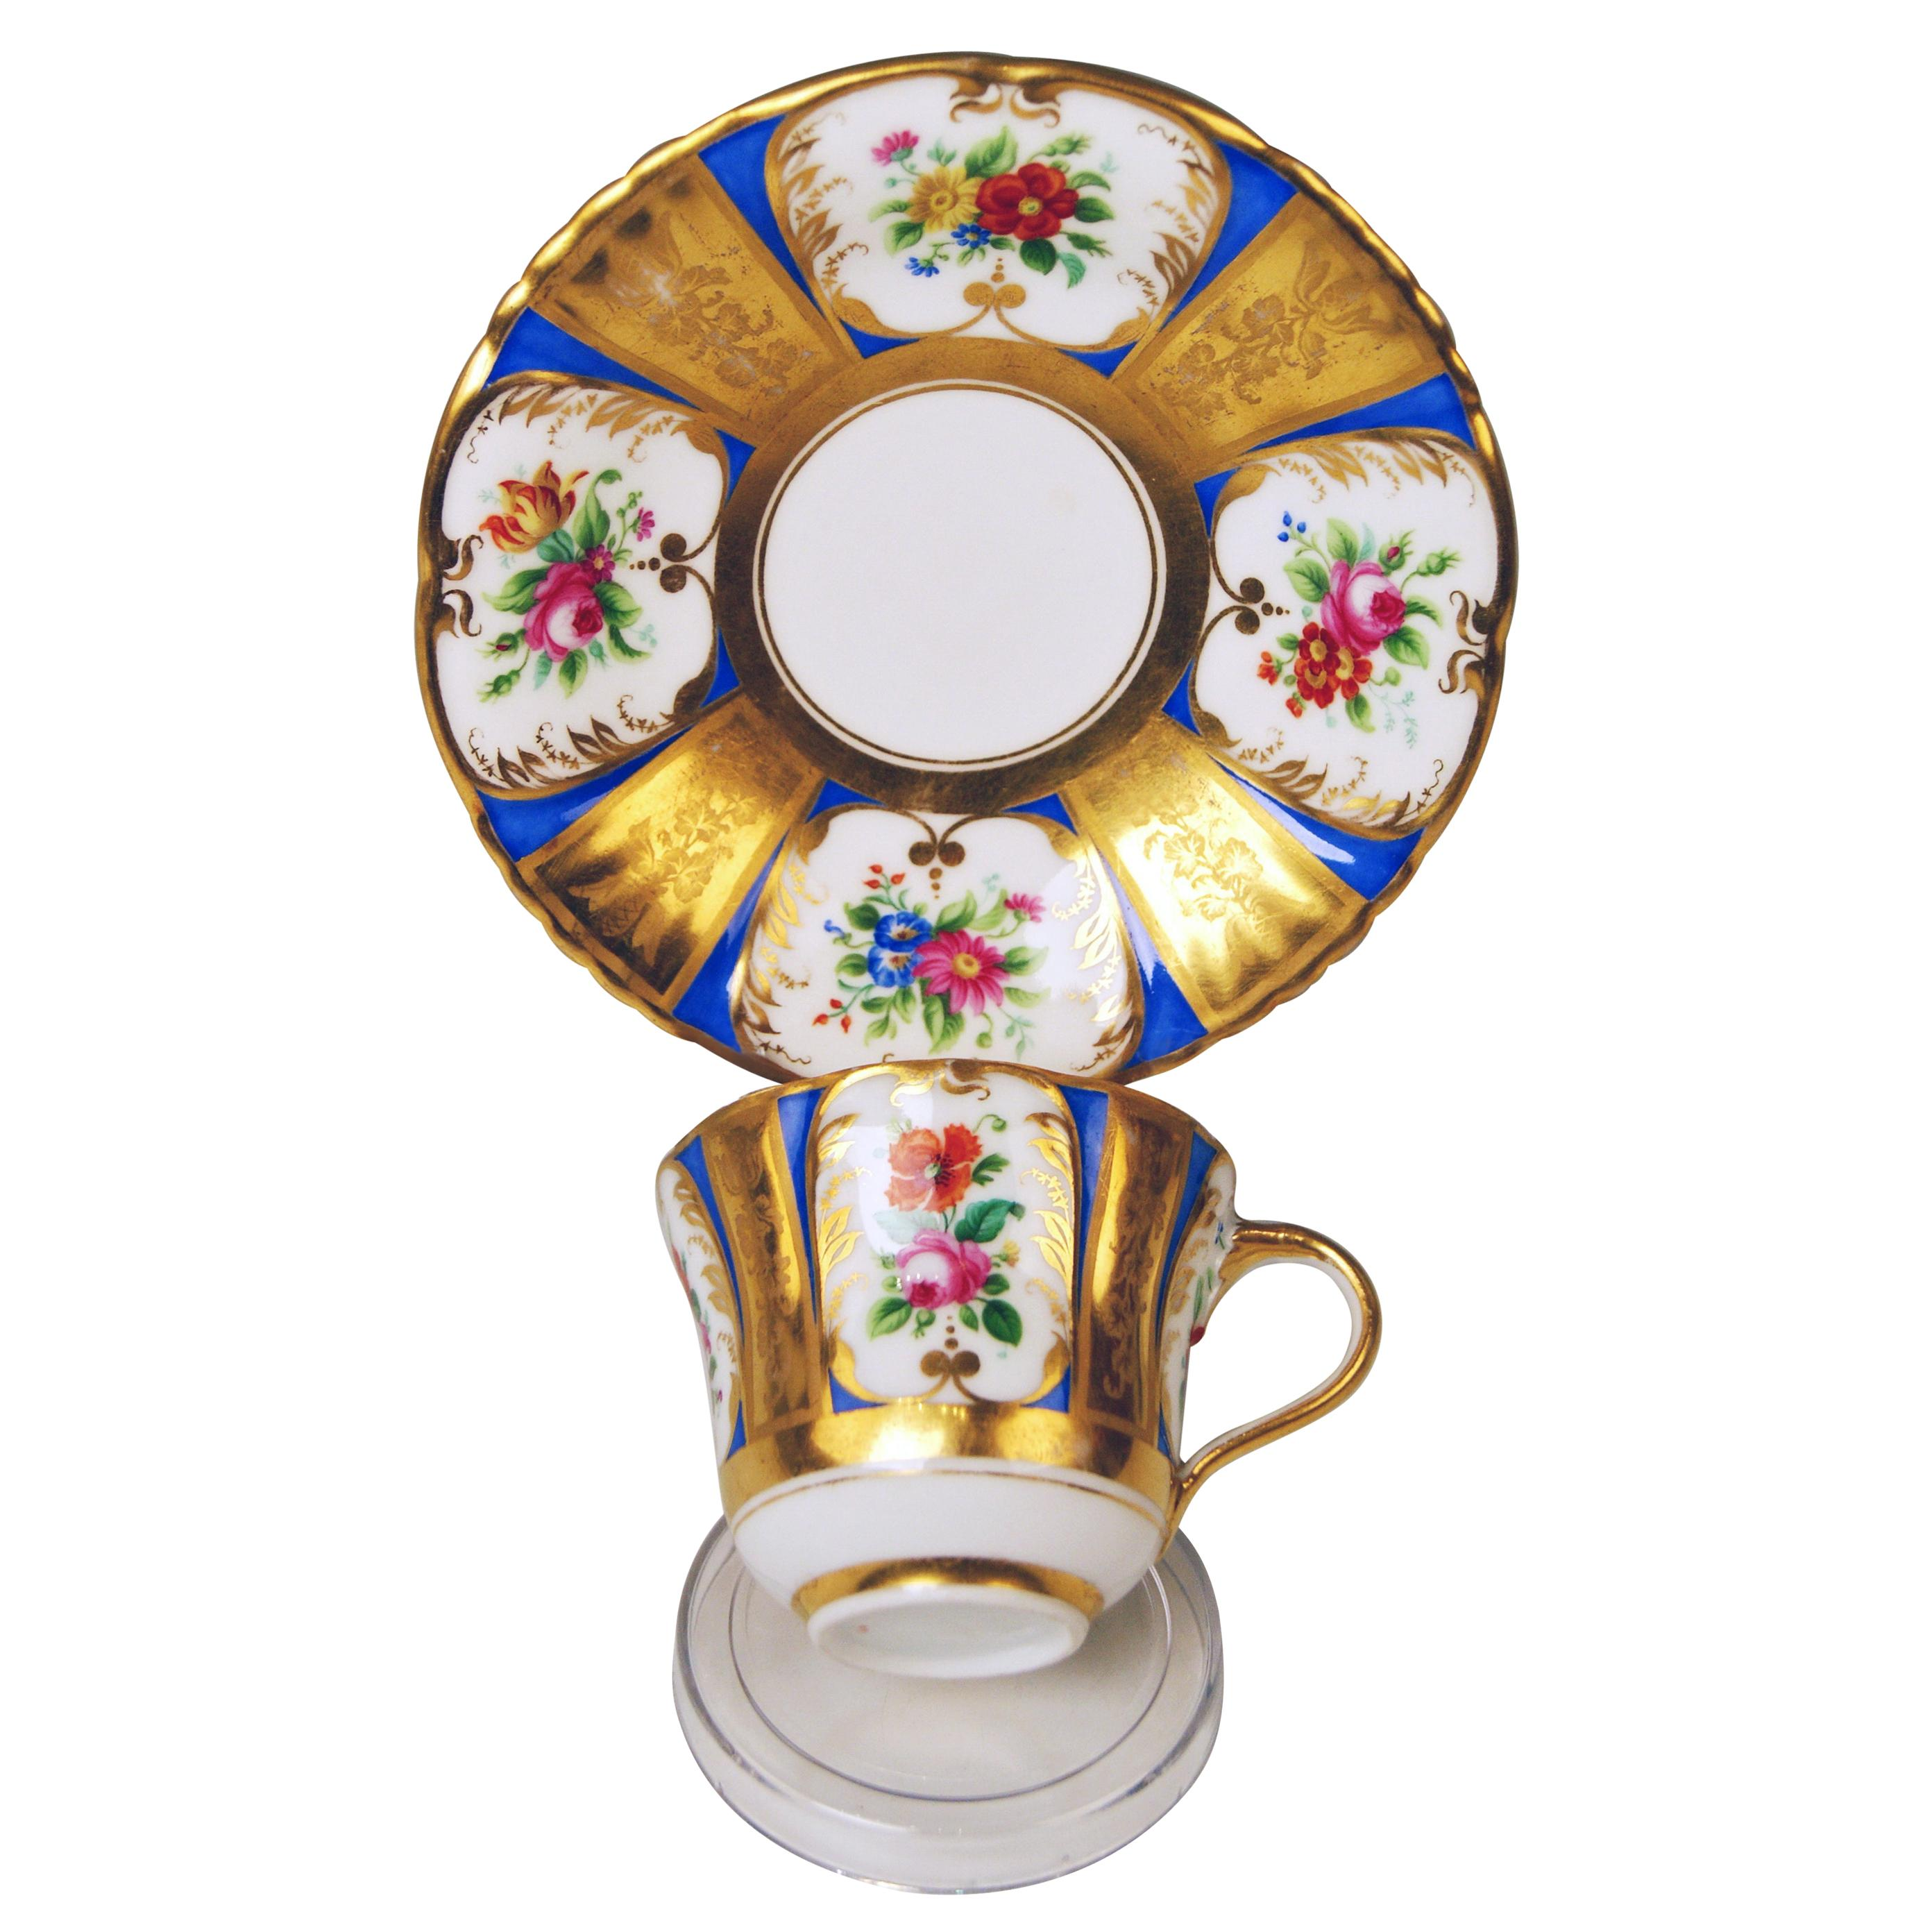 Vienna Imperial Porcelain Cup Saucer Painted with Flowers Golden Shaded, 1855